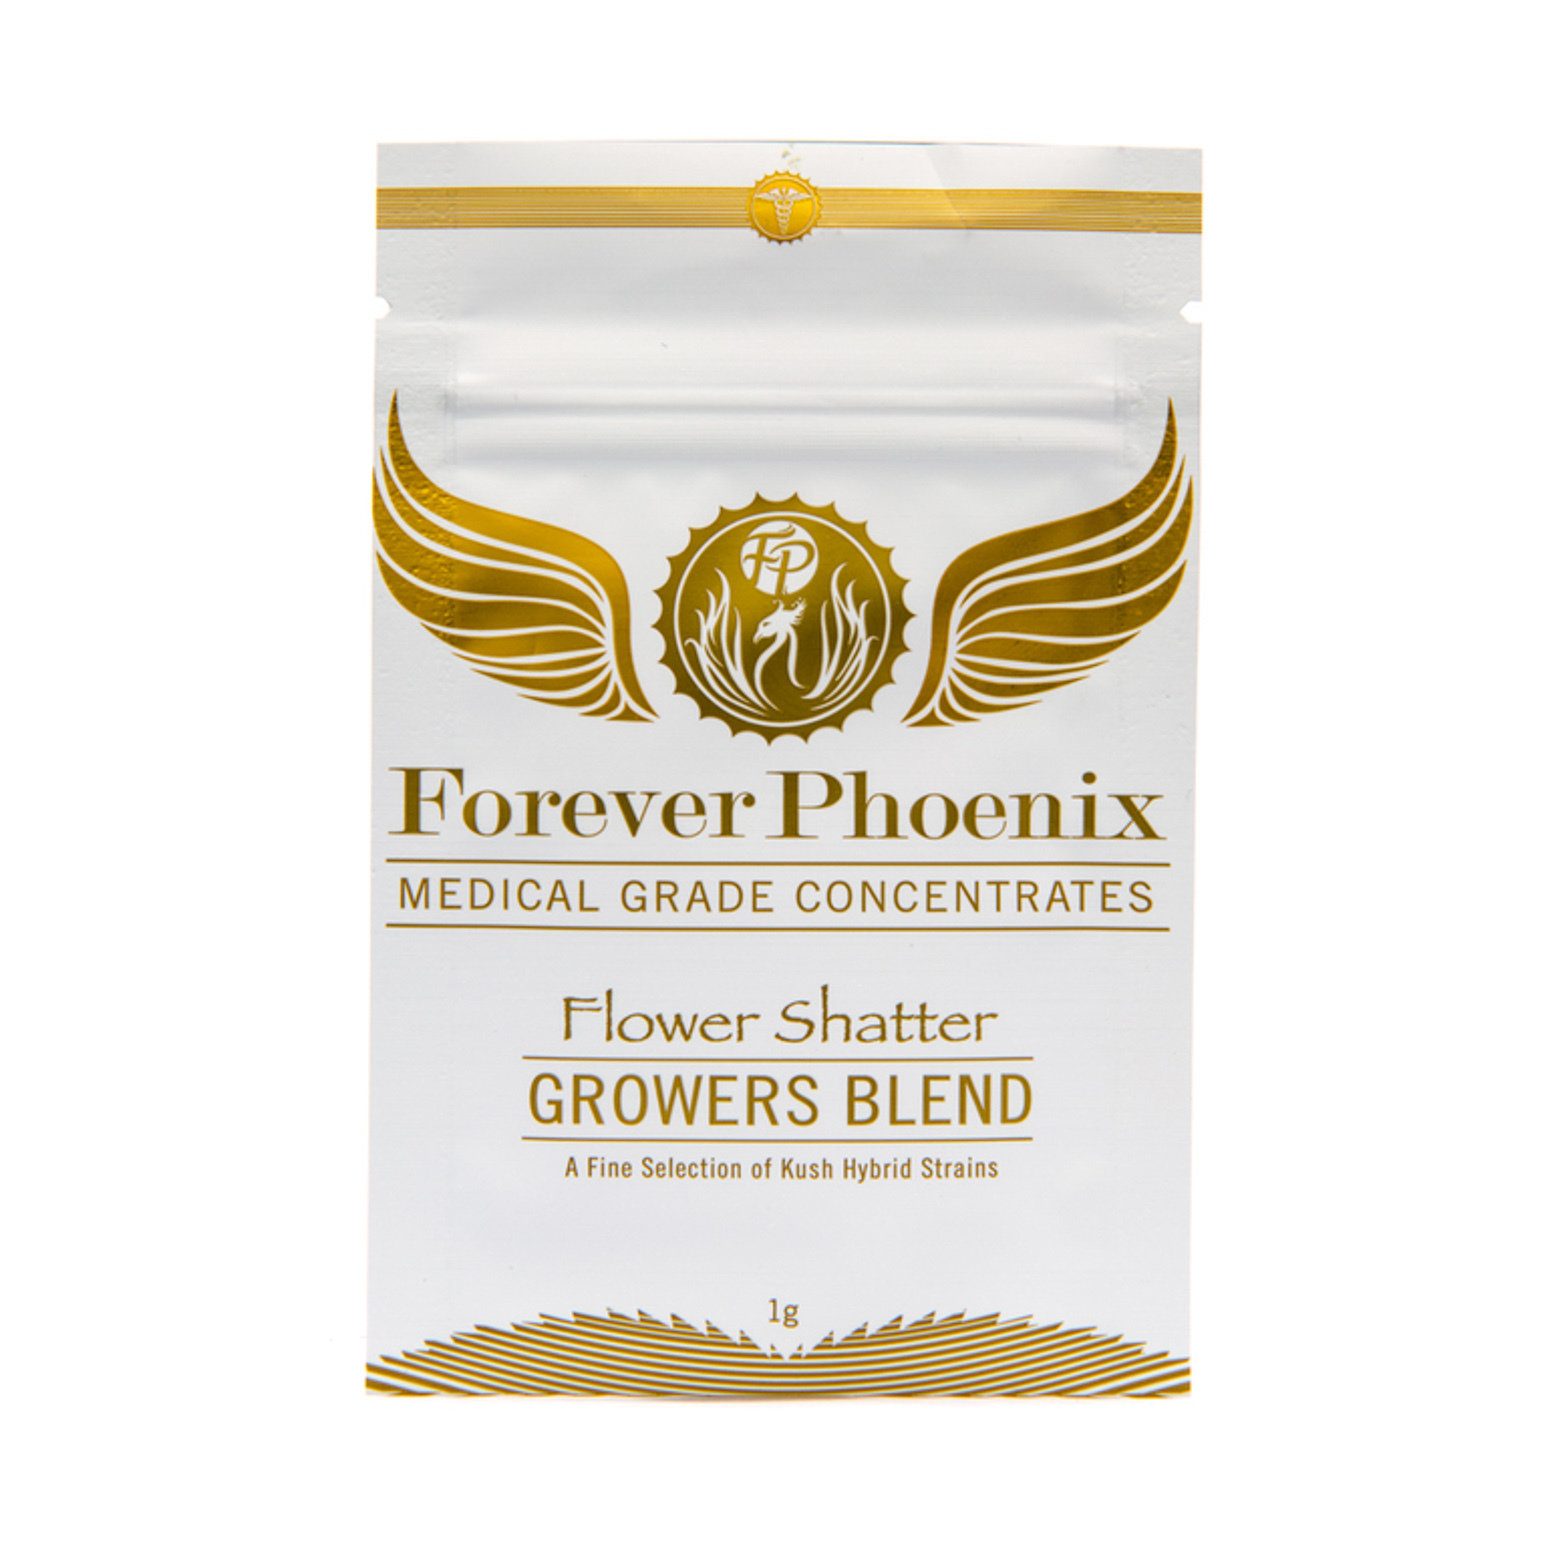 AAAA Flower Shatter Grower's Blend by Forever Phoenix 01129